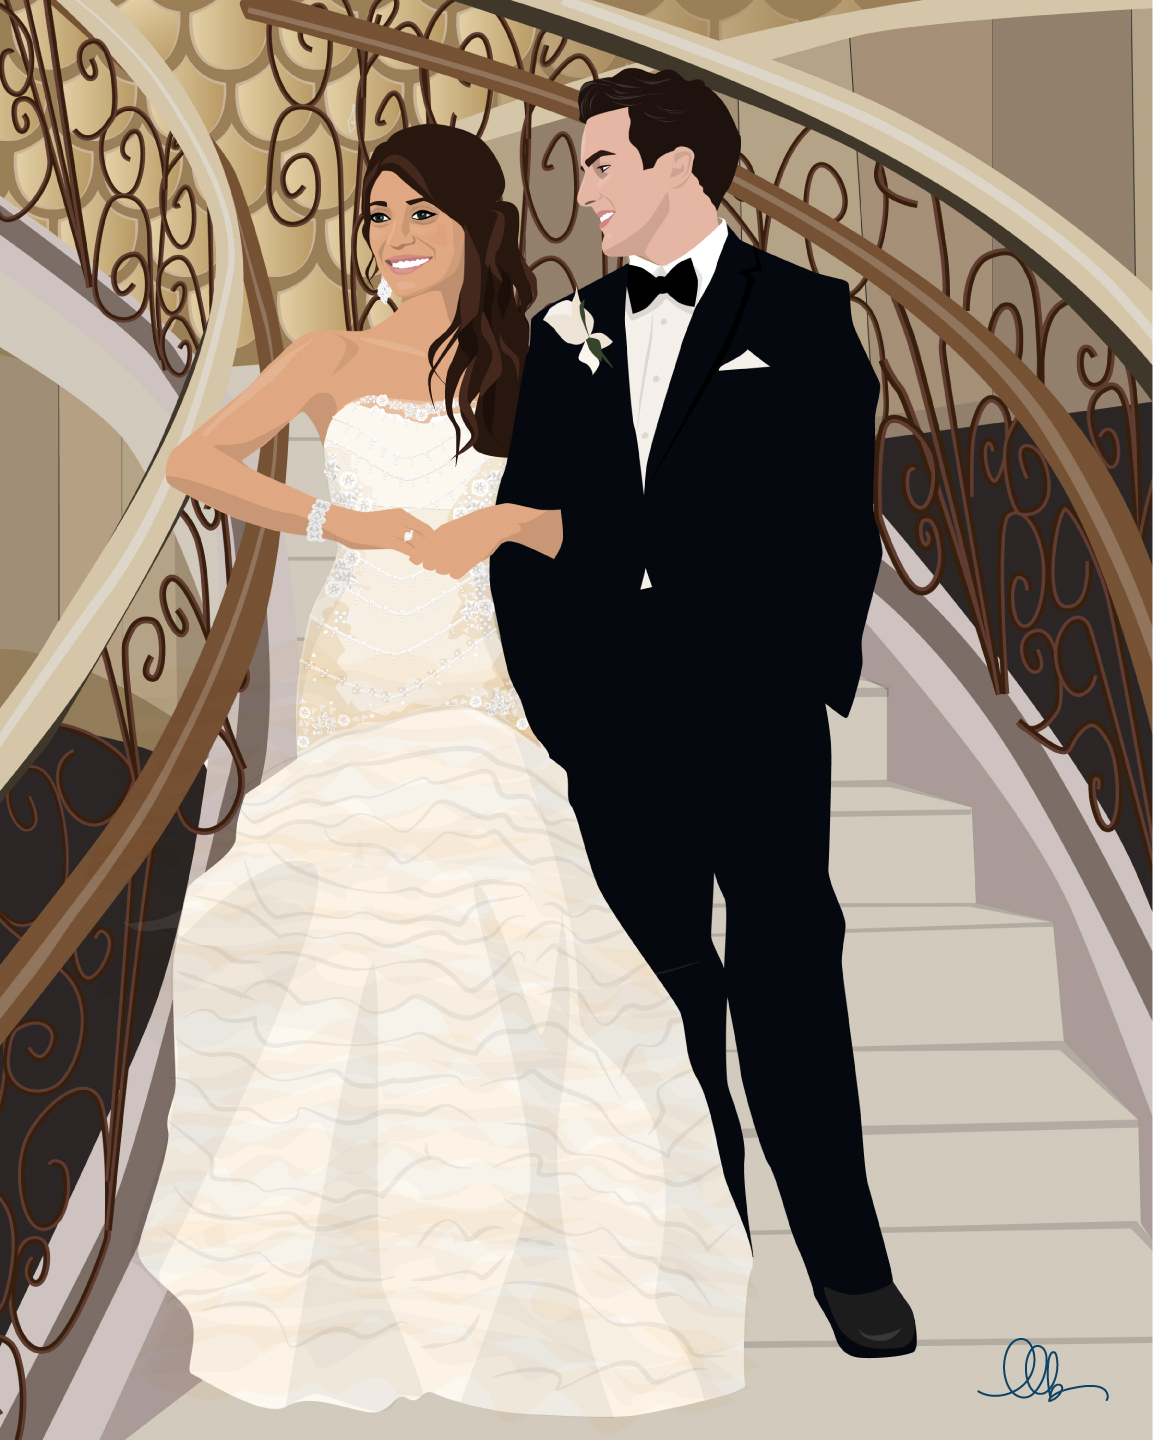 Tanya-and-Nick-Illustration-v4-01.jpg